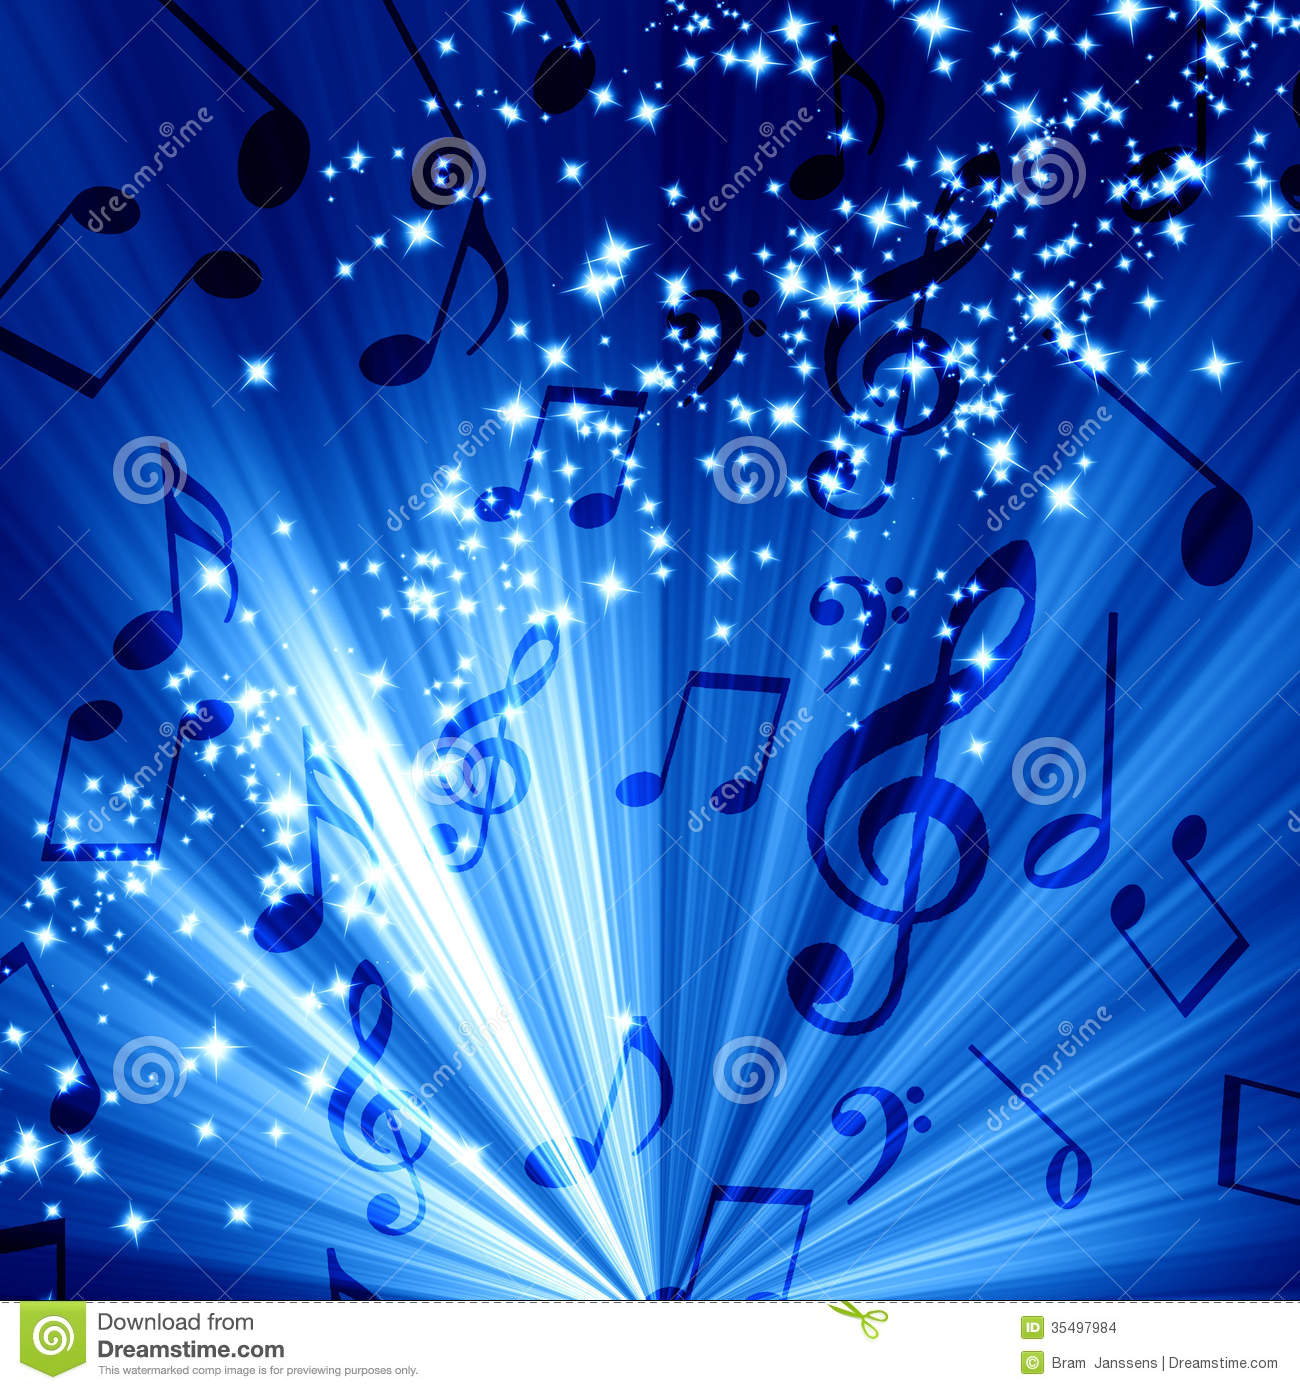 blue music notes wallpaper wallpapersafari